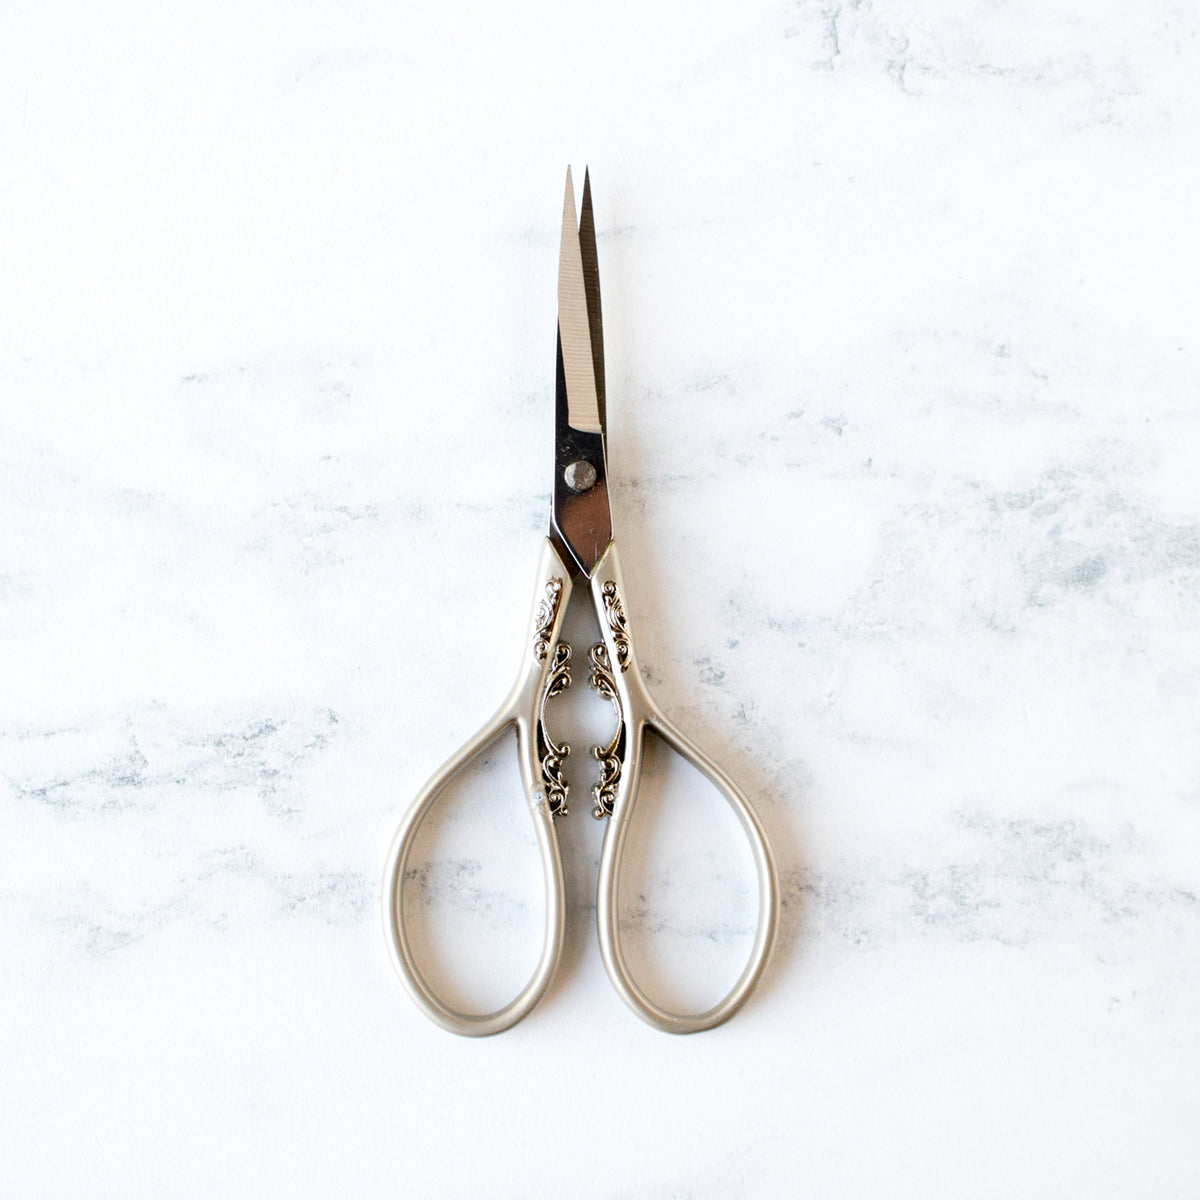 Marquis Embroidery Scissors with Filigree